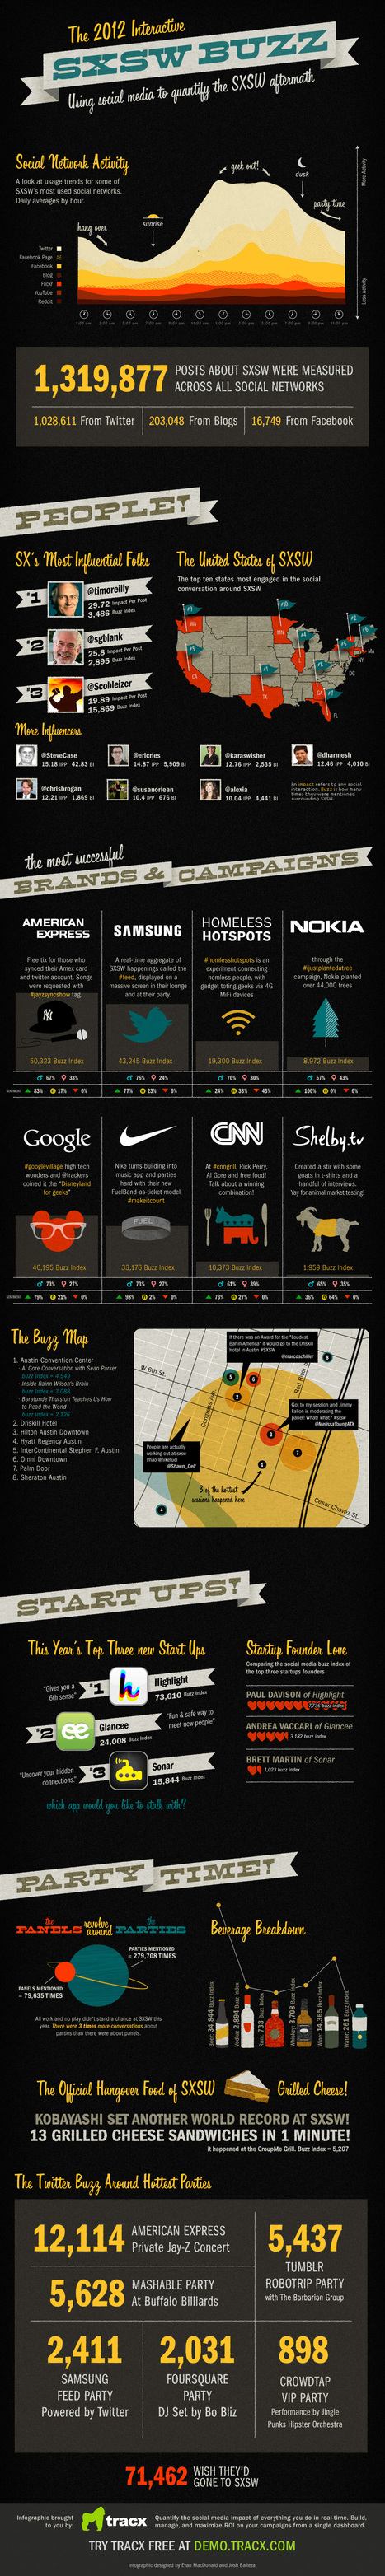 The Ultimate SXSW INFOGRAPHIC | Social media and education | Scoop.it